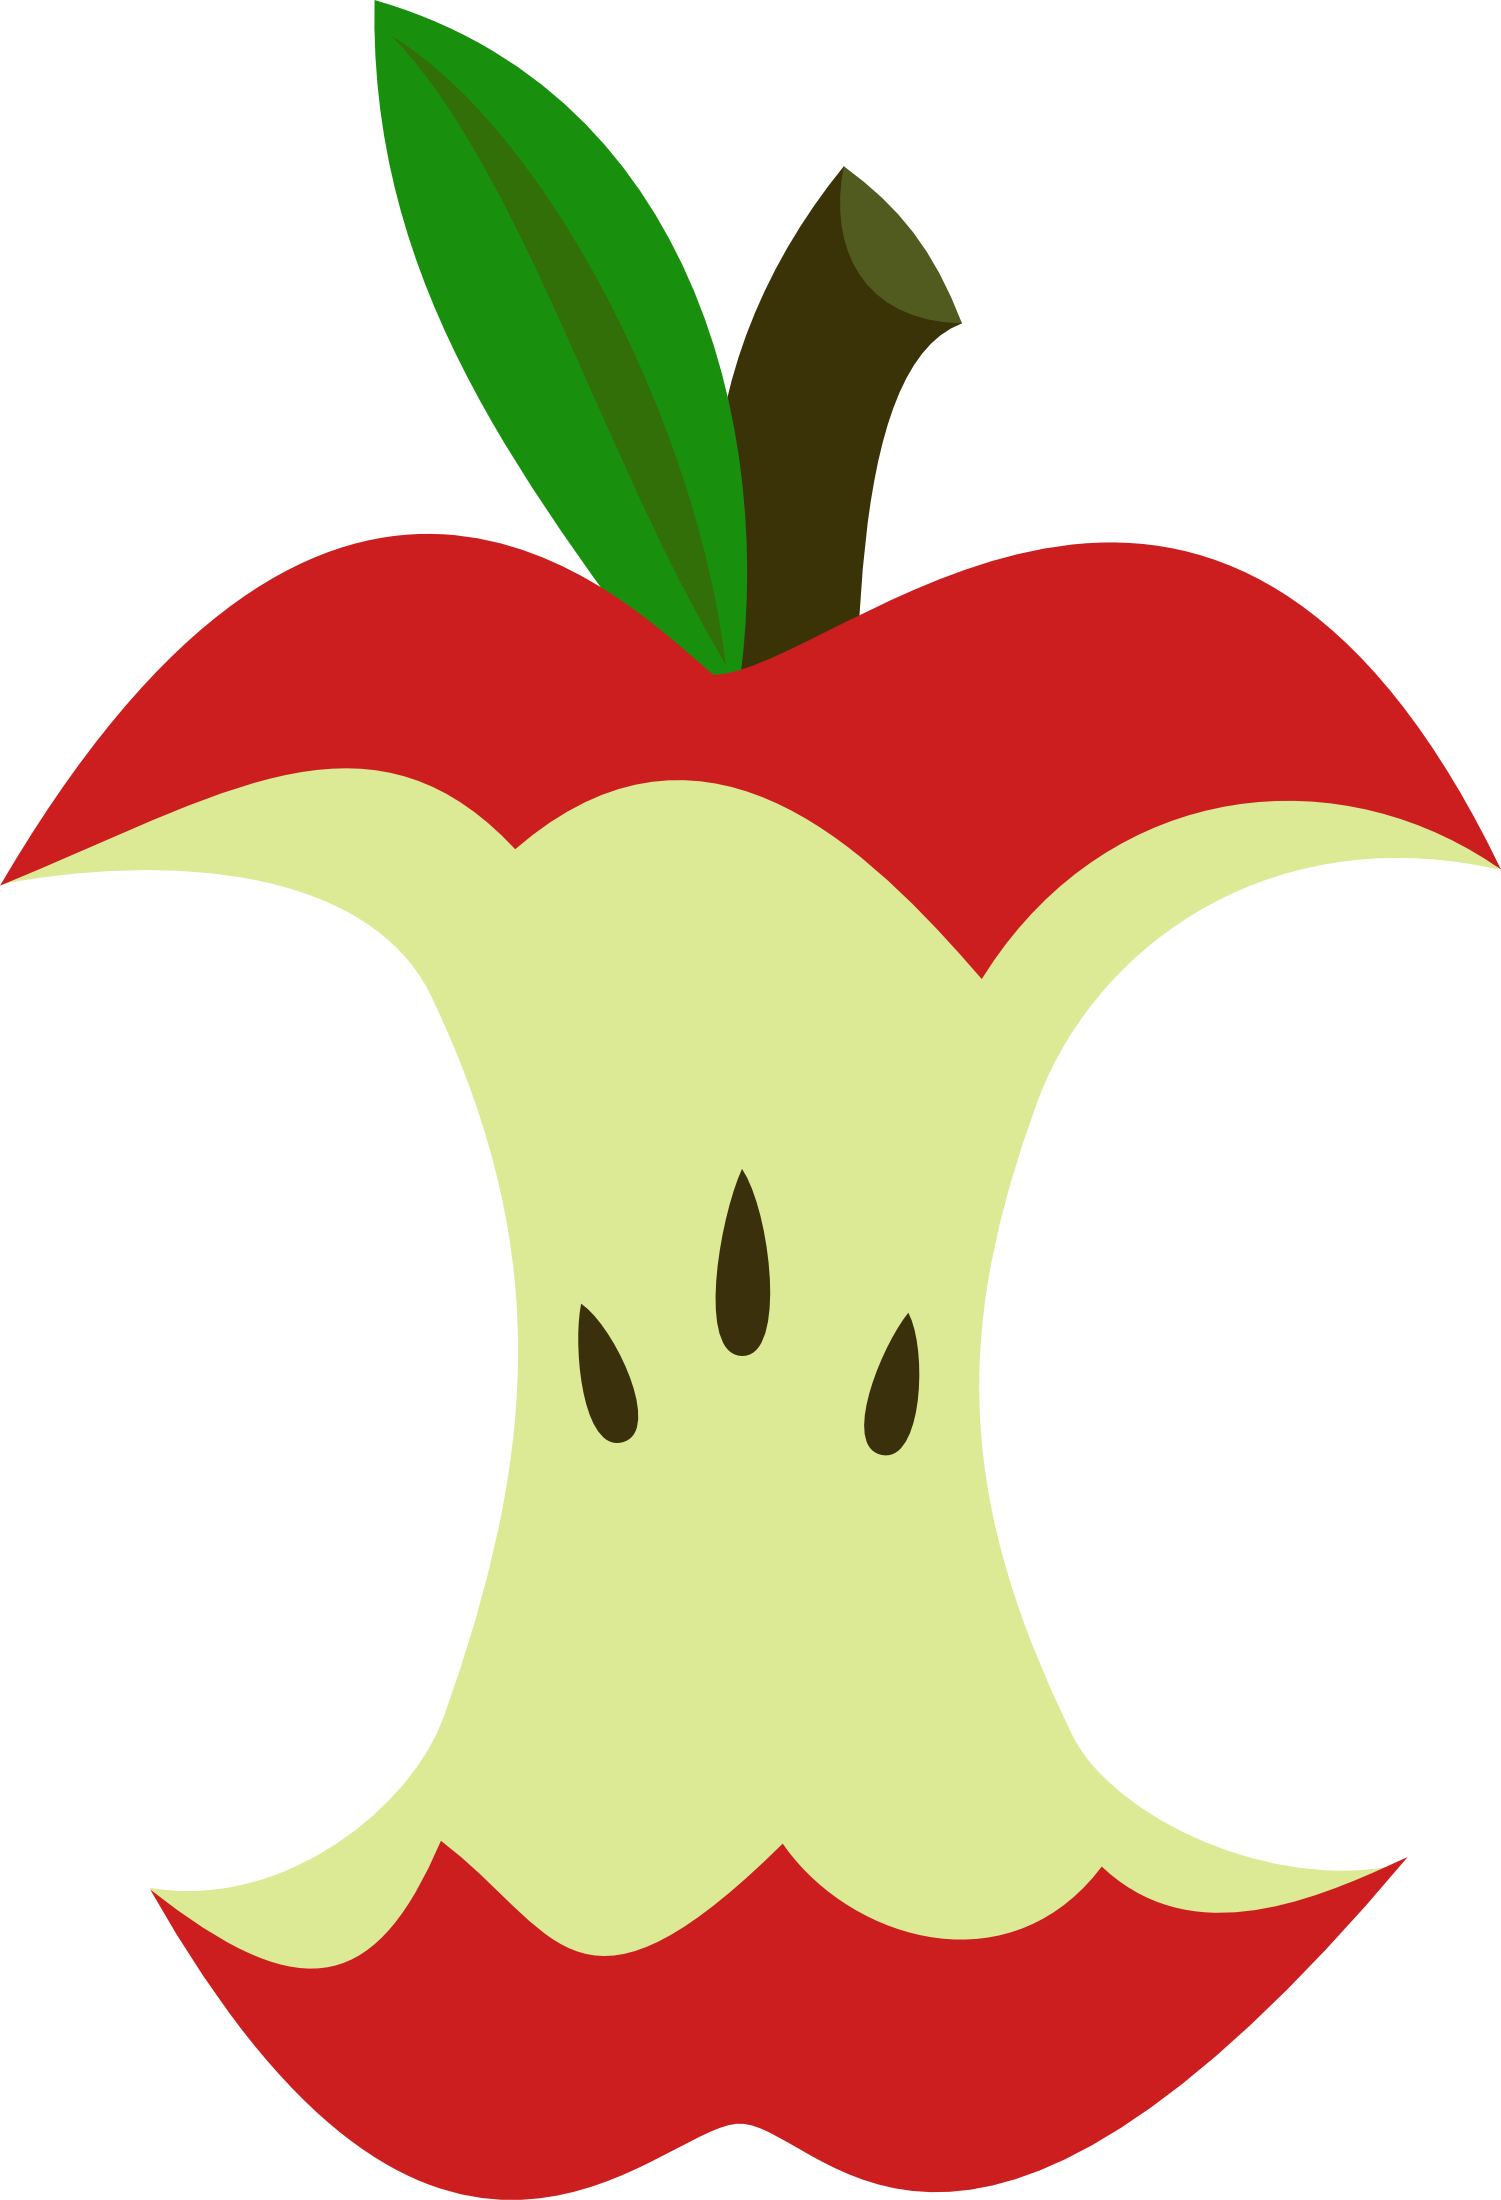 Apple core cutie mark. Watermelon clipart picnic potluck